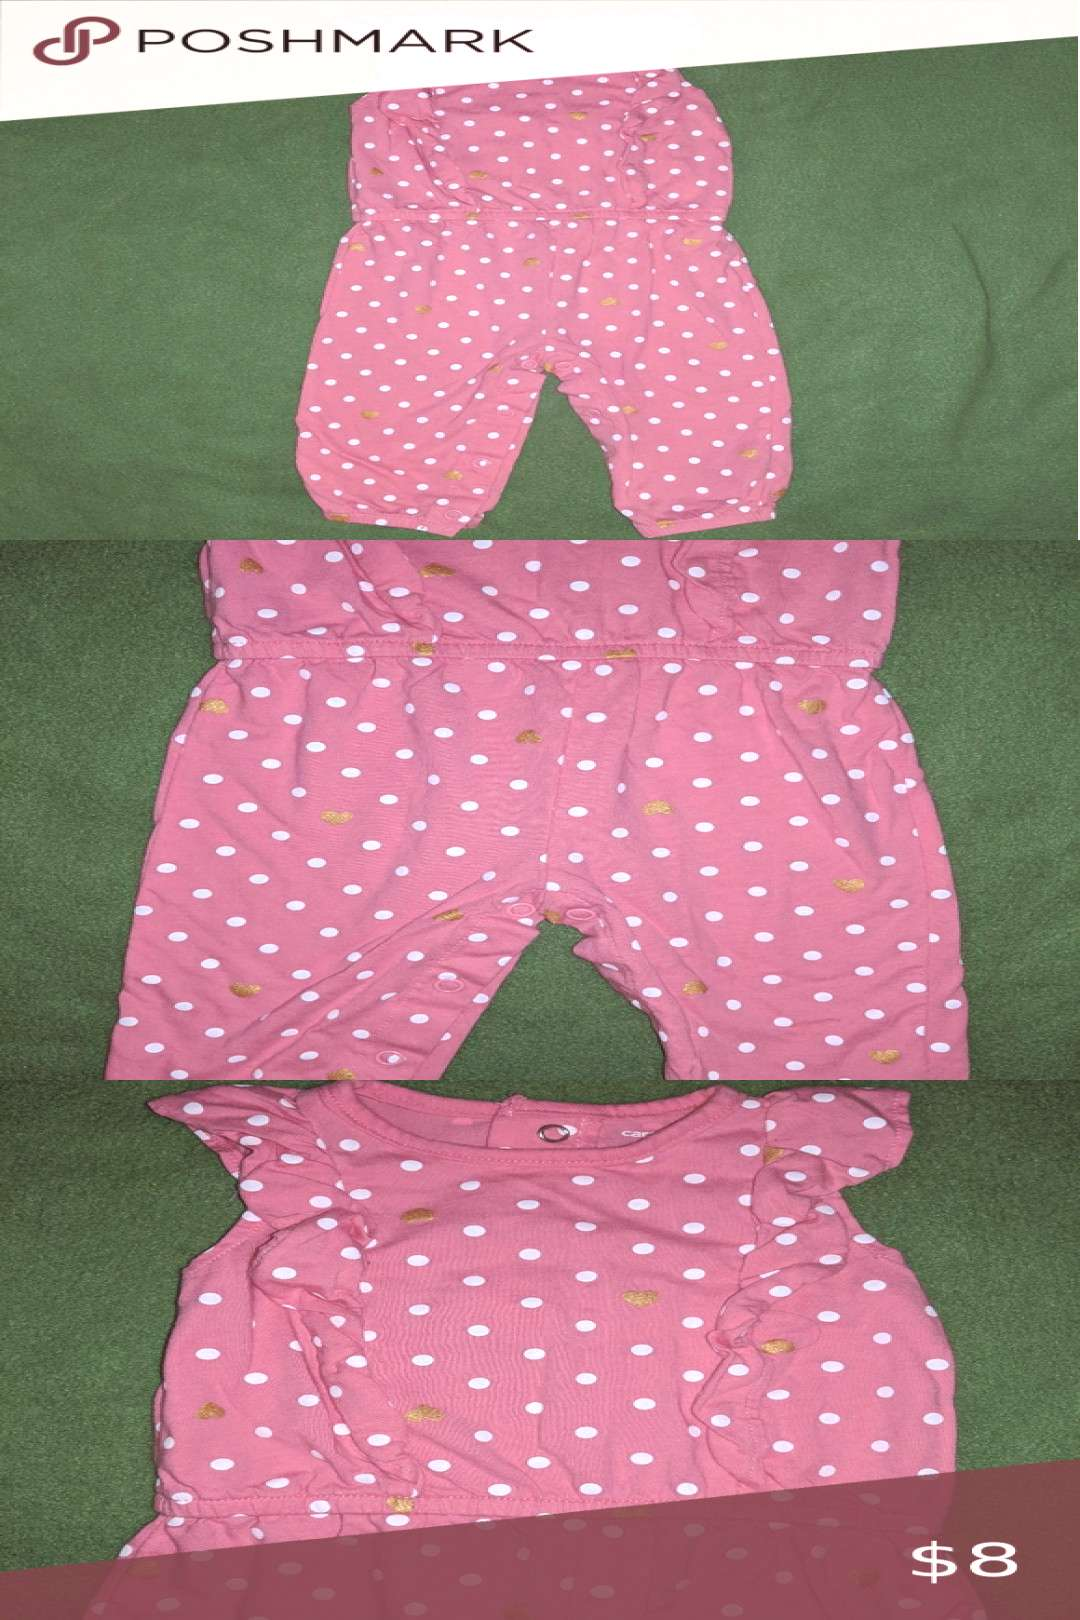 Carters outfit size 6 mos. Carters baby girls outfit size 6 mos. In great condition! No holes, ri